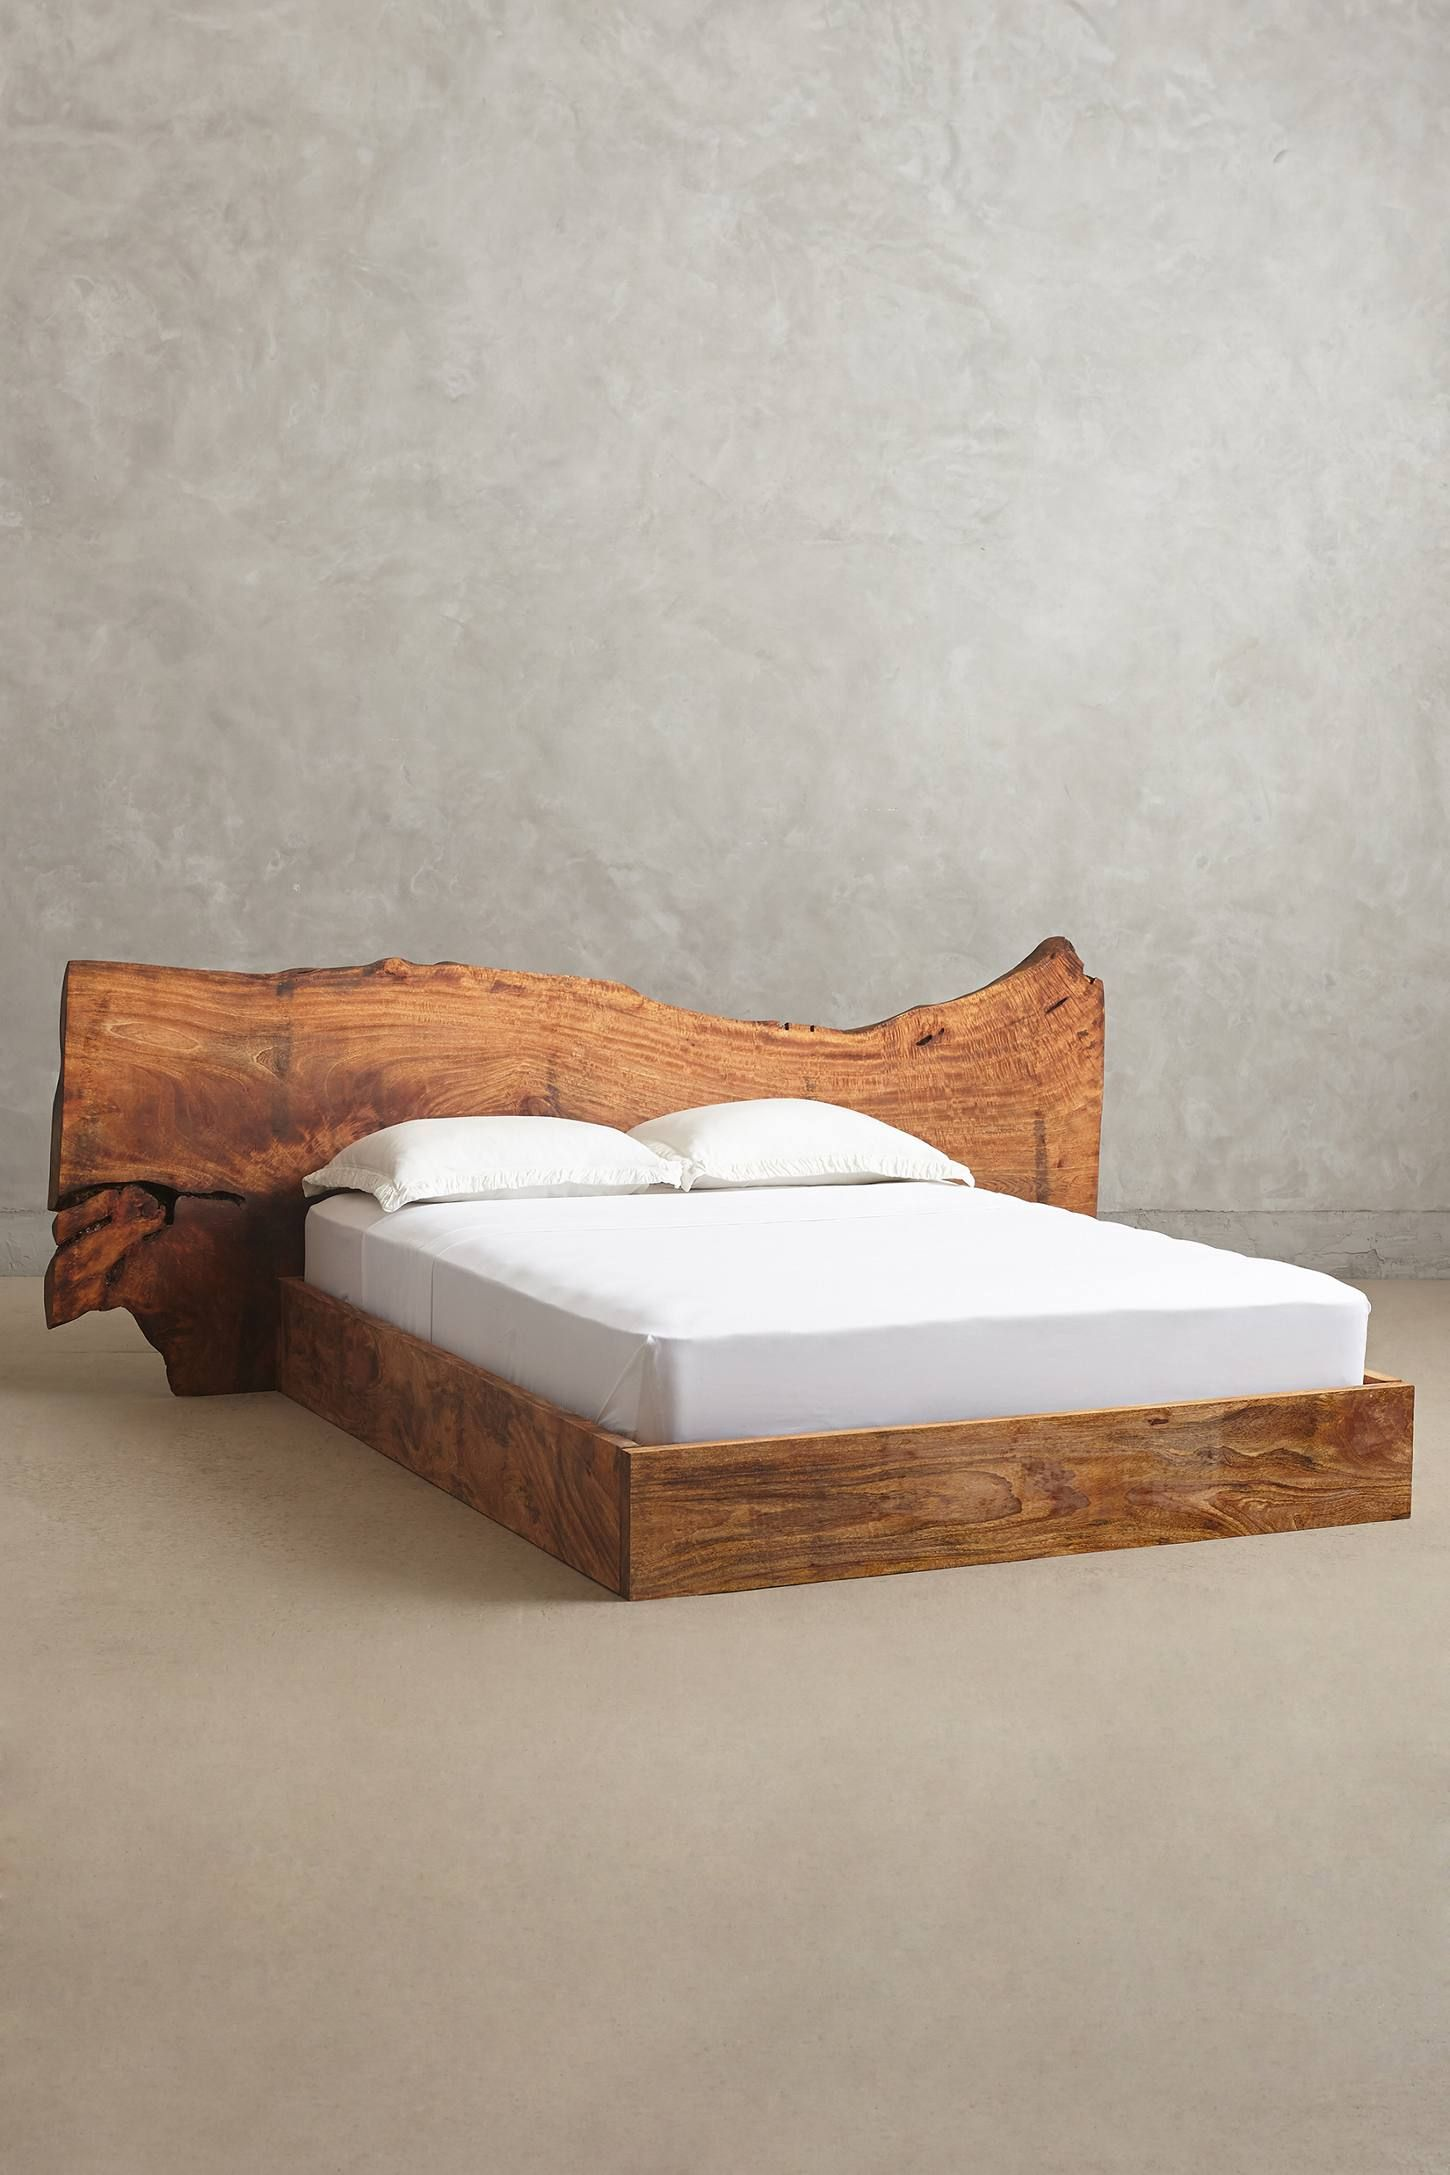 Best Live Edge Wood Queen Bed Live Edge Furniture Live Edge Wood Wood Beds 400 x 300